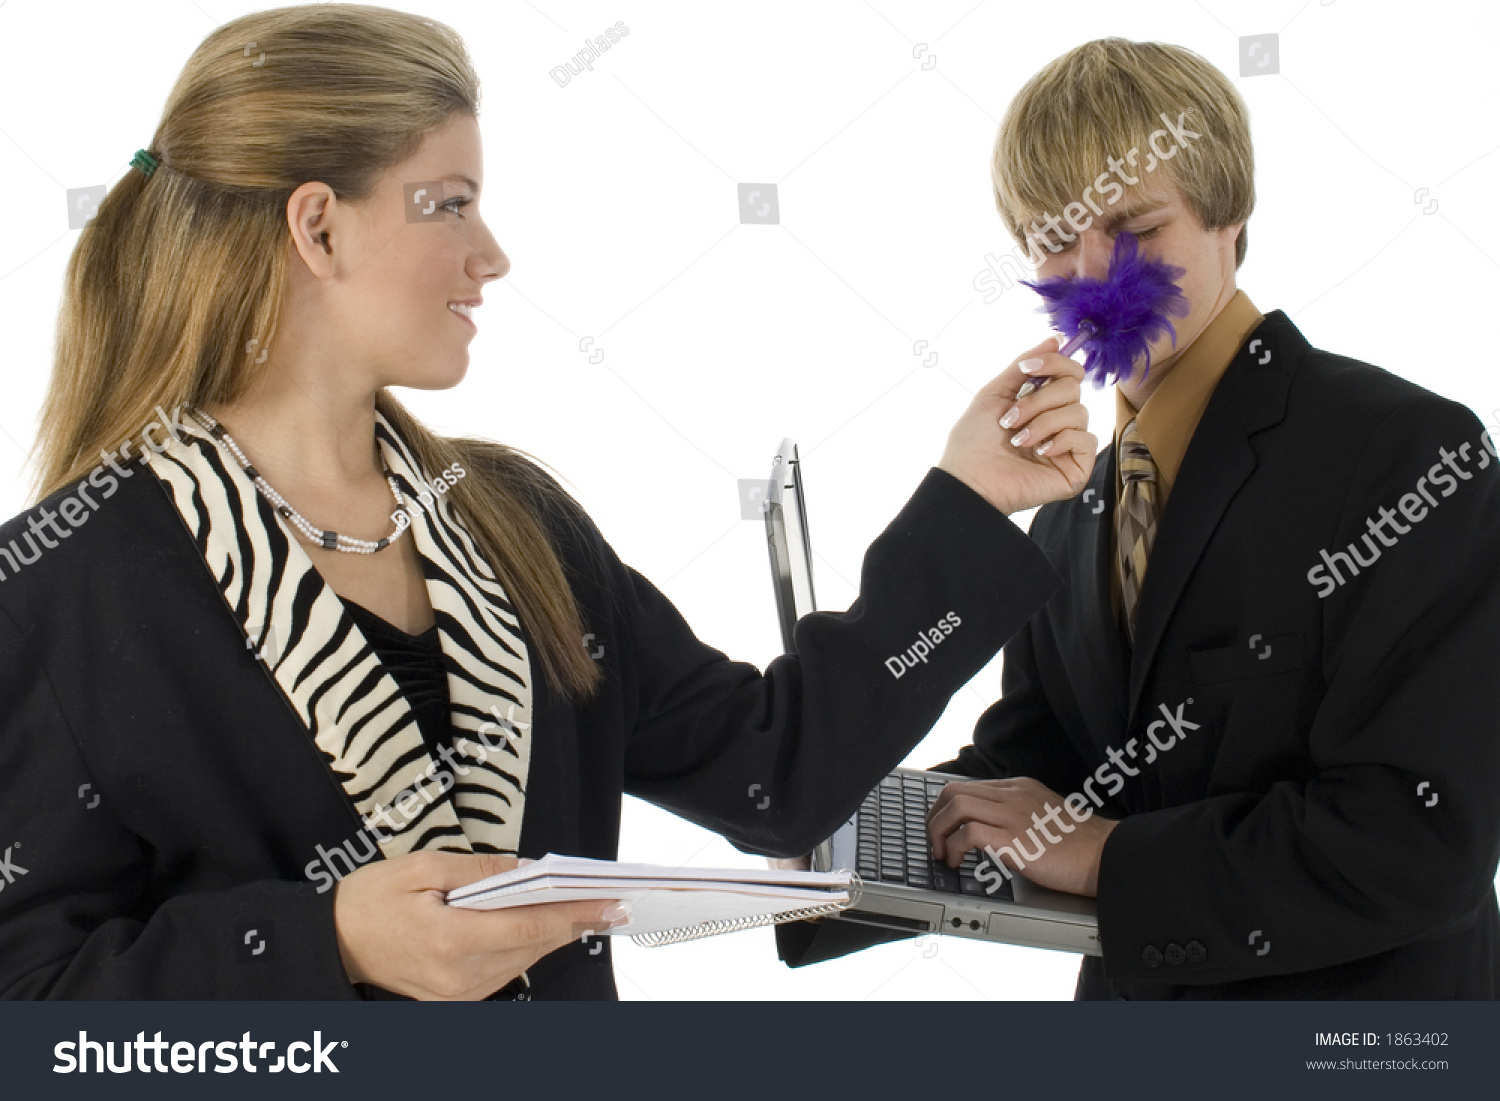 teen girl tickles teen boy feather stock photo shutterstock teen girl tickles teen boy feather pen dressed in business suits